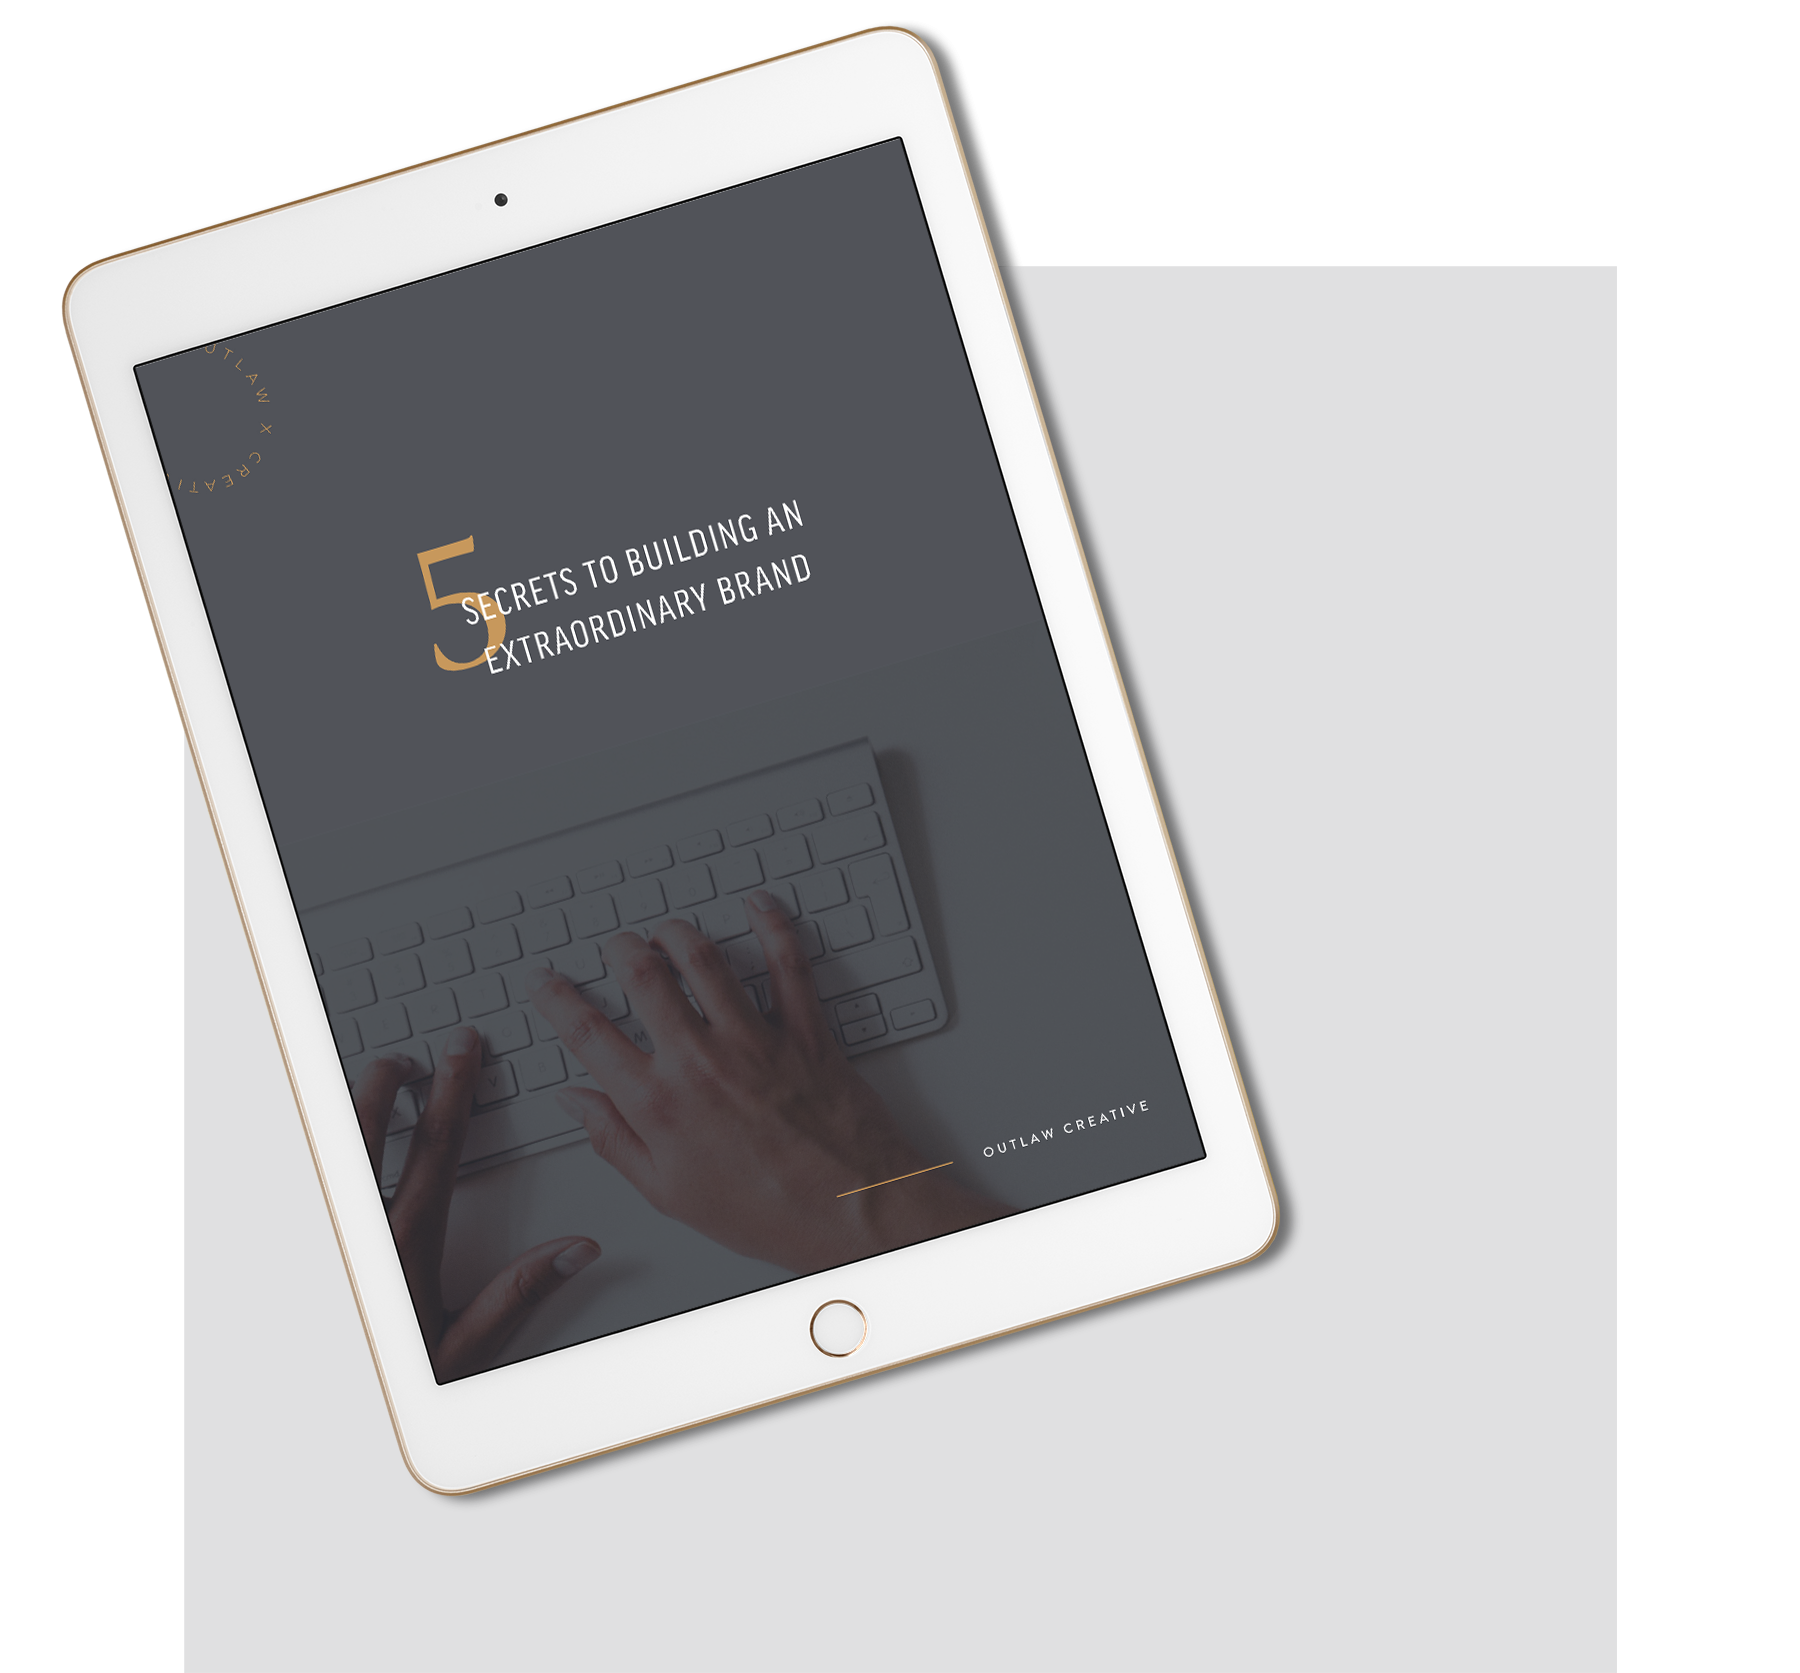 5 Secrets Landing Page Graphic Grey Right.png